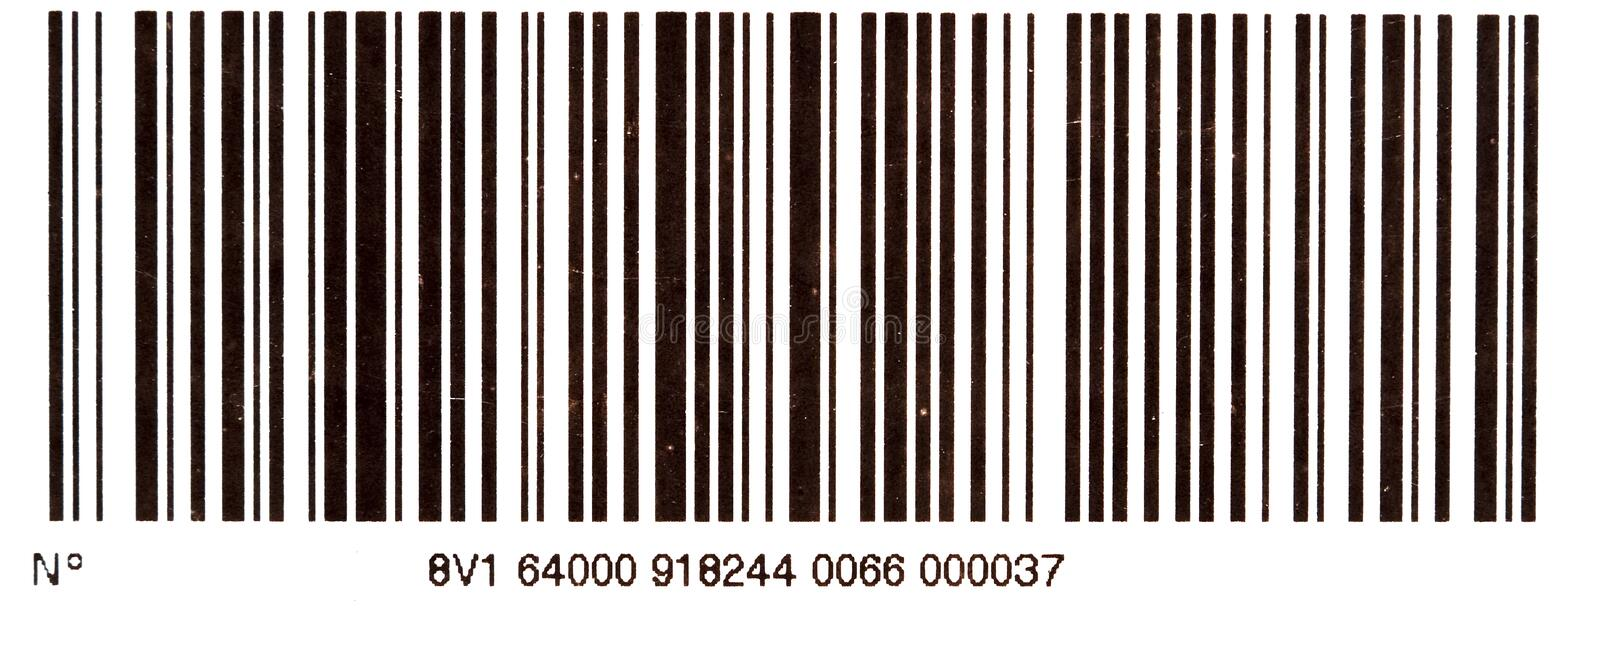 Bar code. Black bar code isolated on a white background royalty free stock image